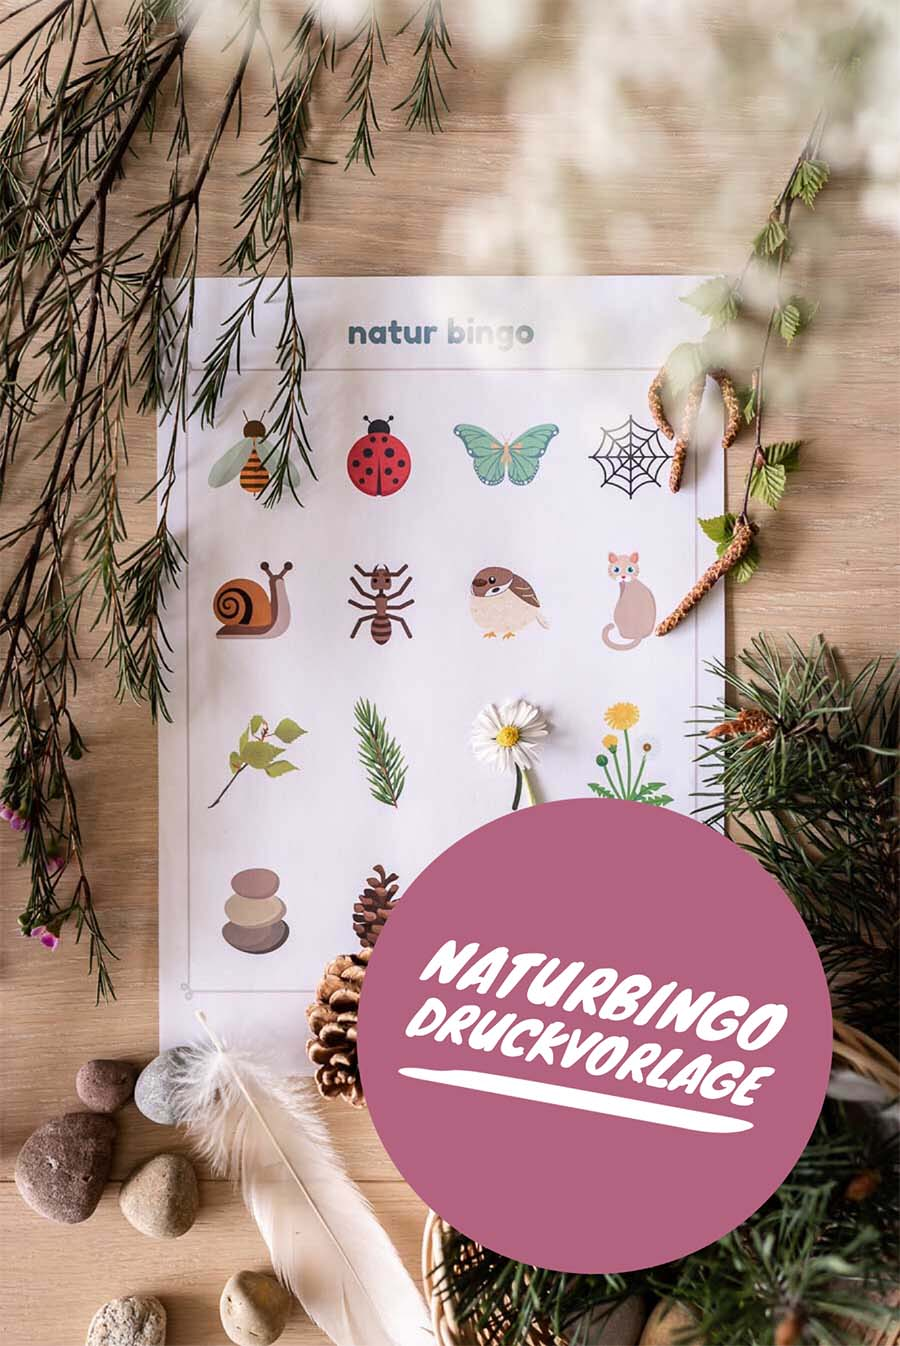 Discover nature with children: Free print templates for a nature bingo #naturbingo #print template